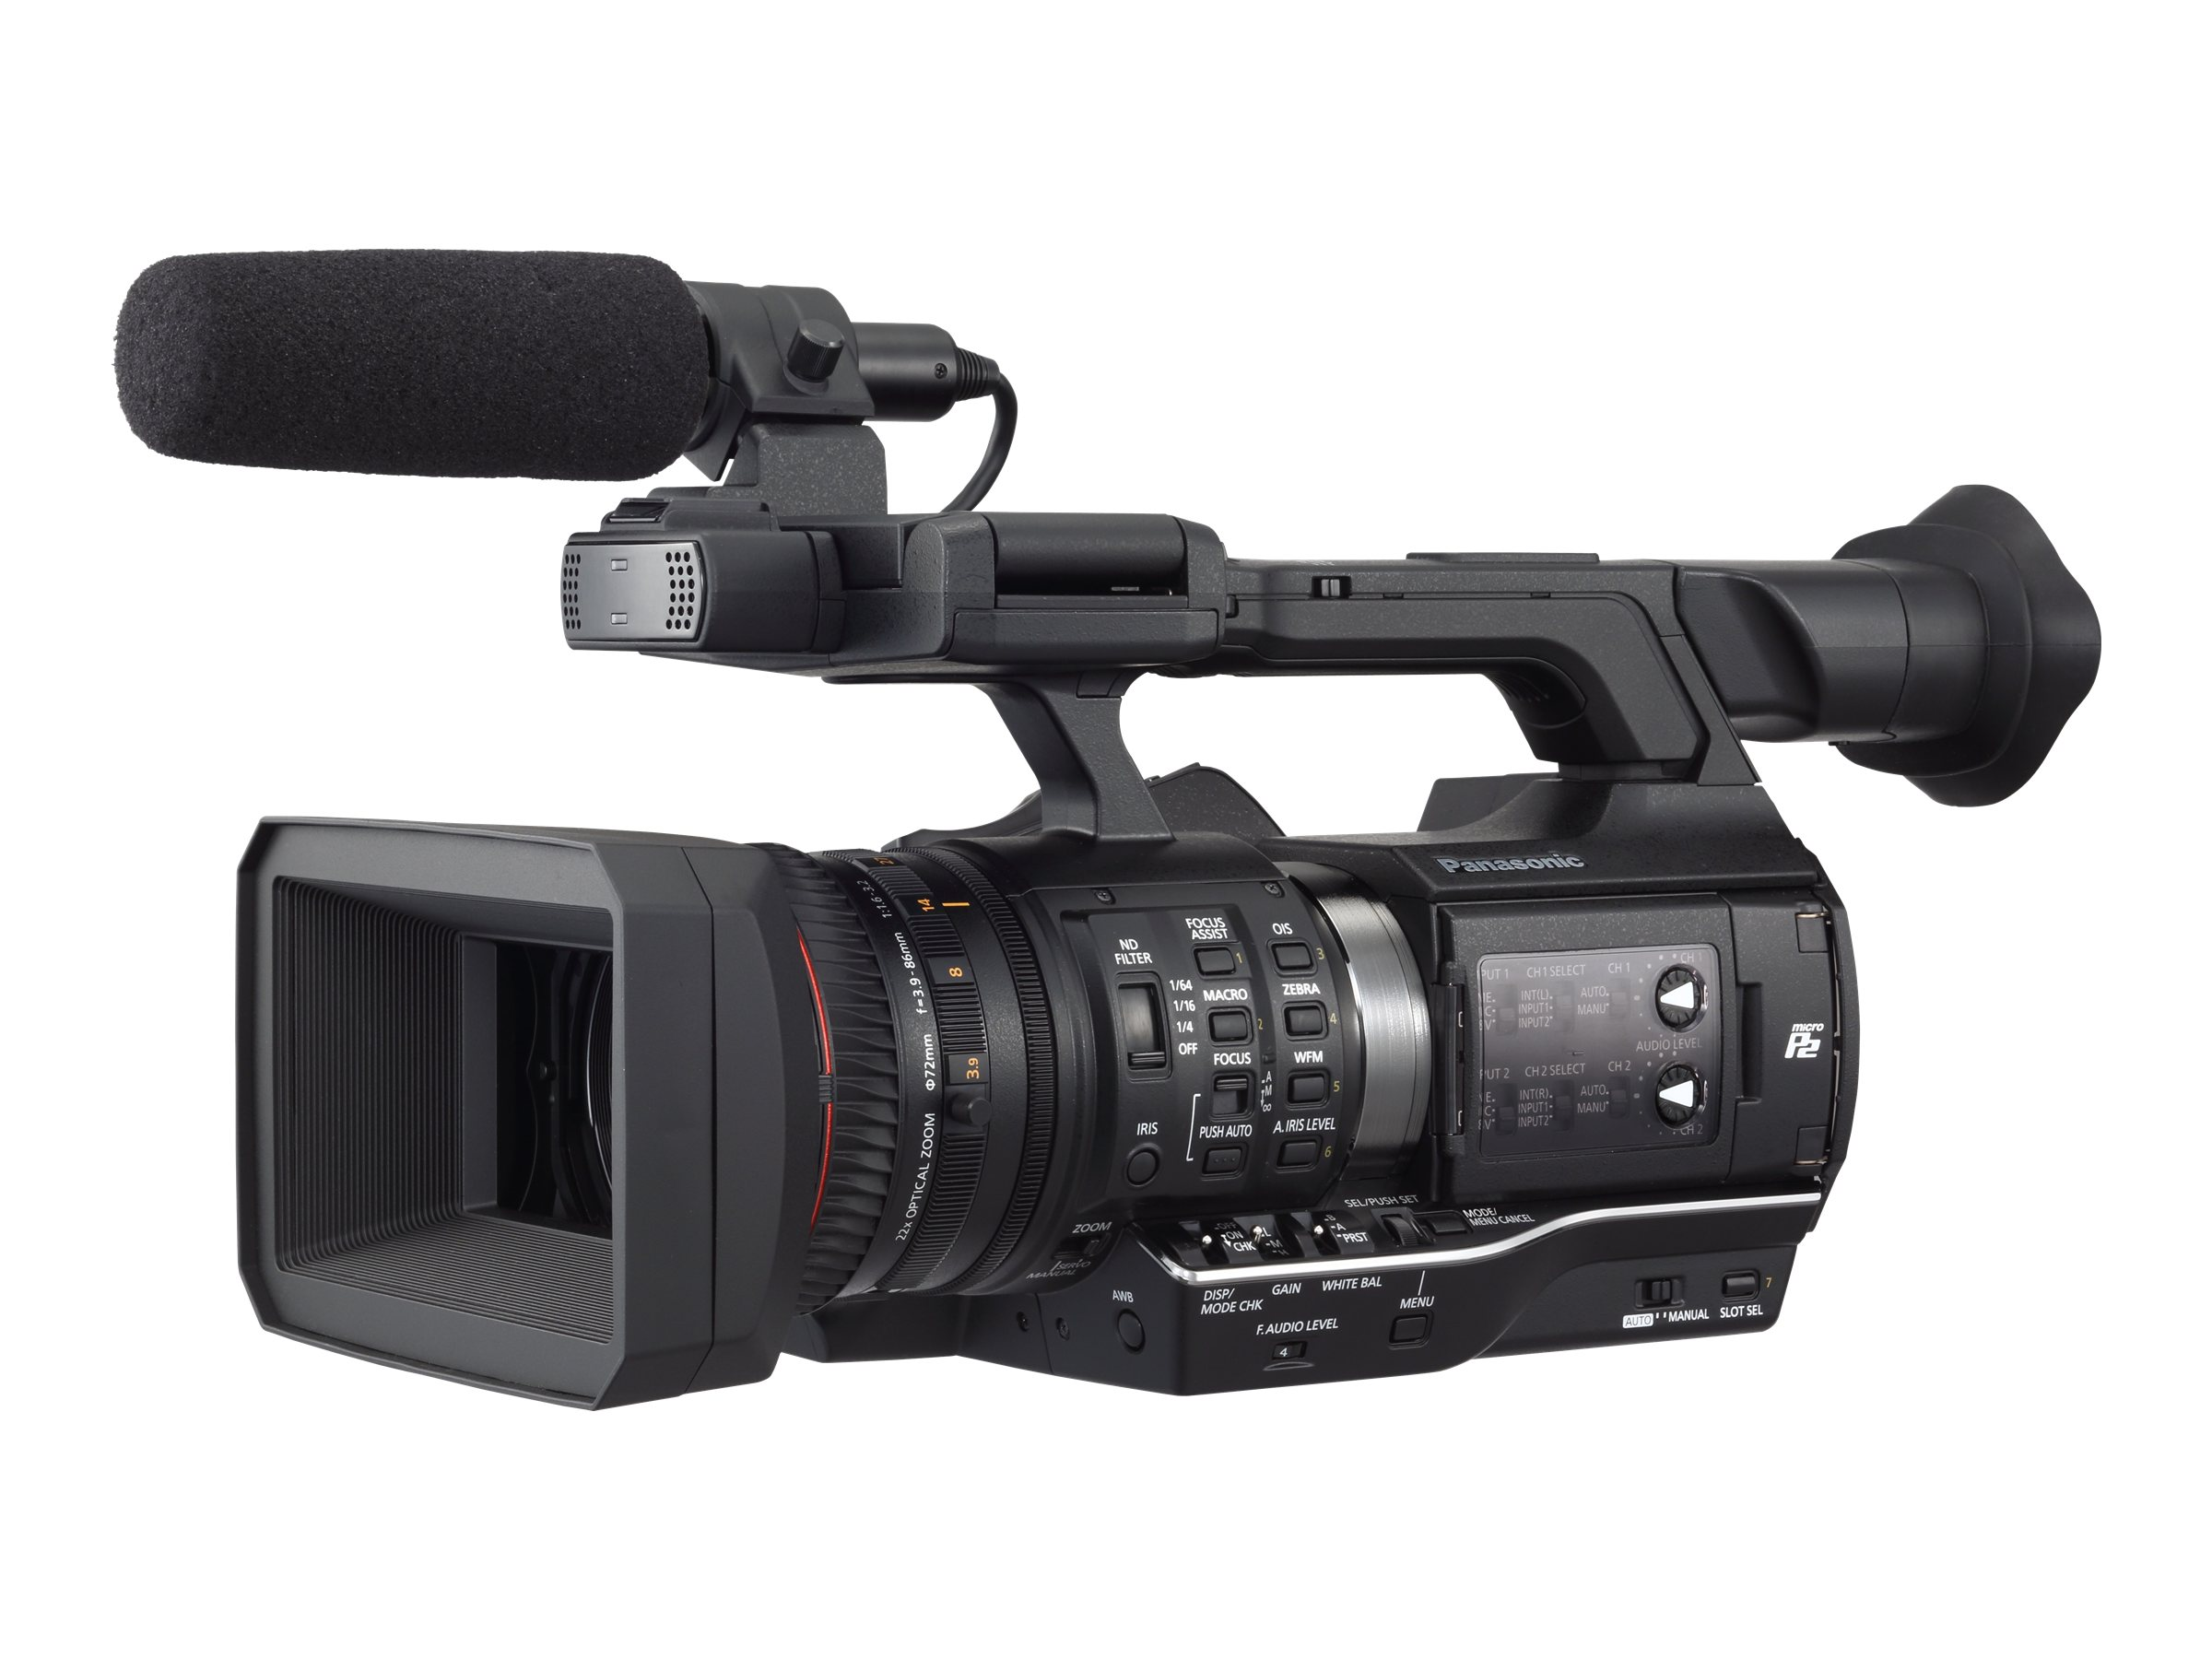 Panasonic Handheld P2 HD Camcorder with AVC-ULTRA Recording